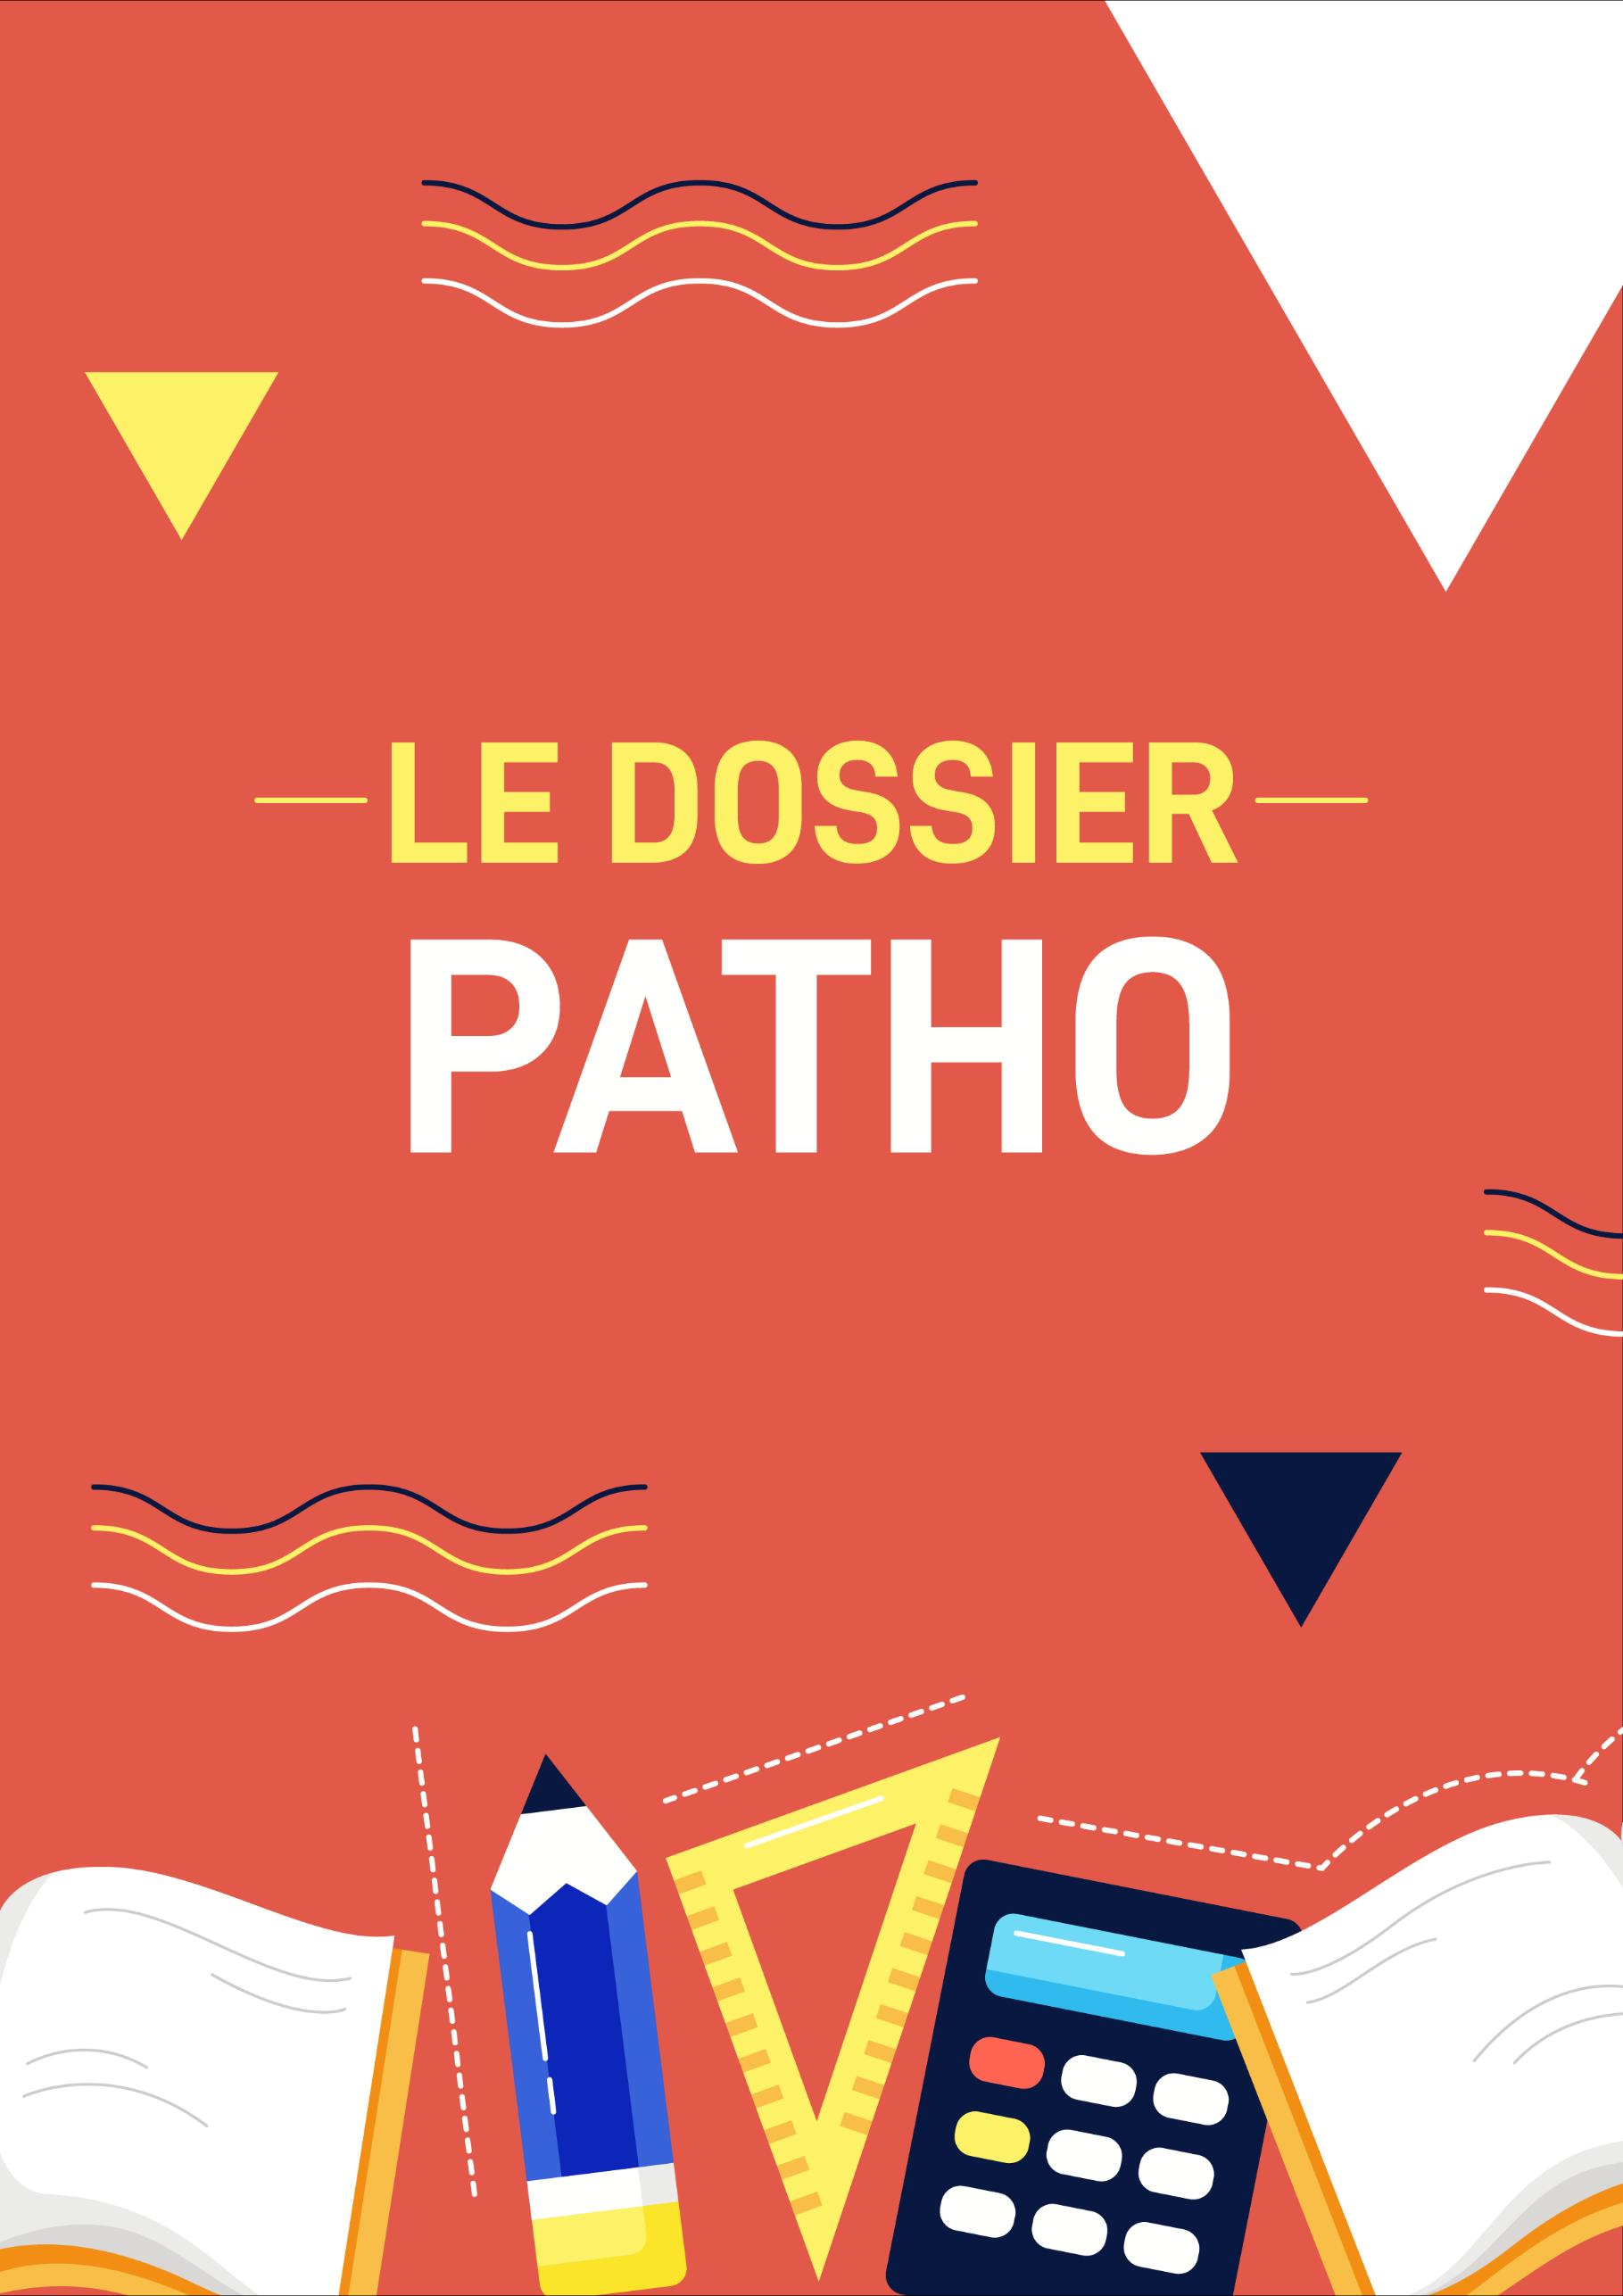 Page 32 of Le dossier patho